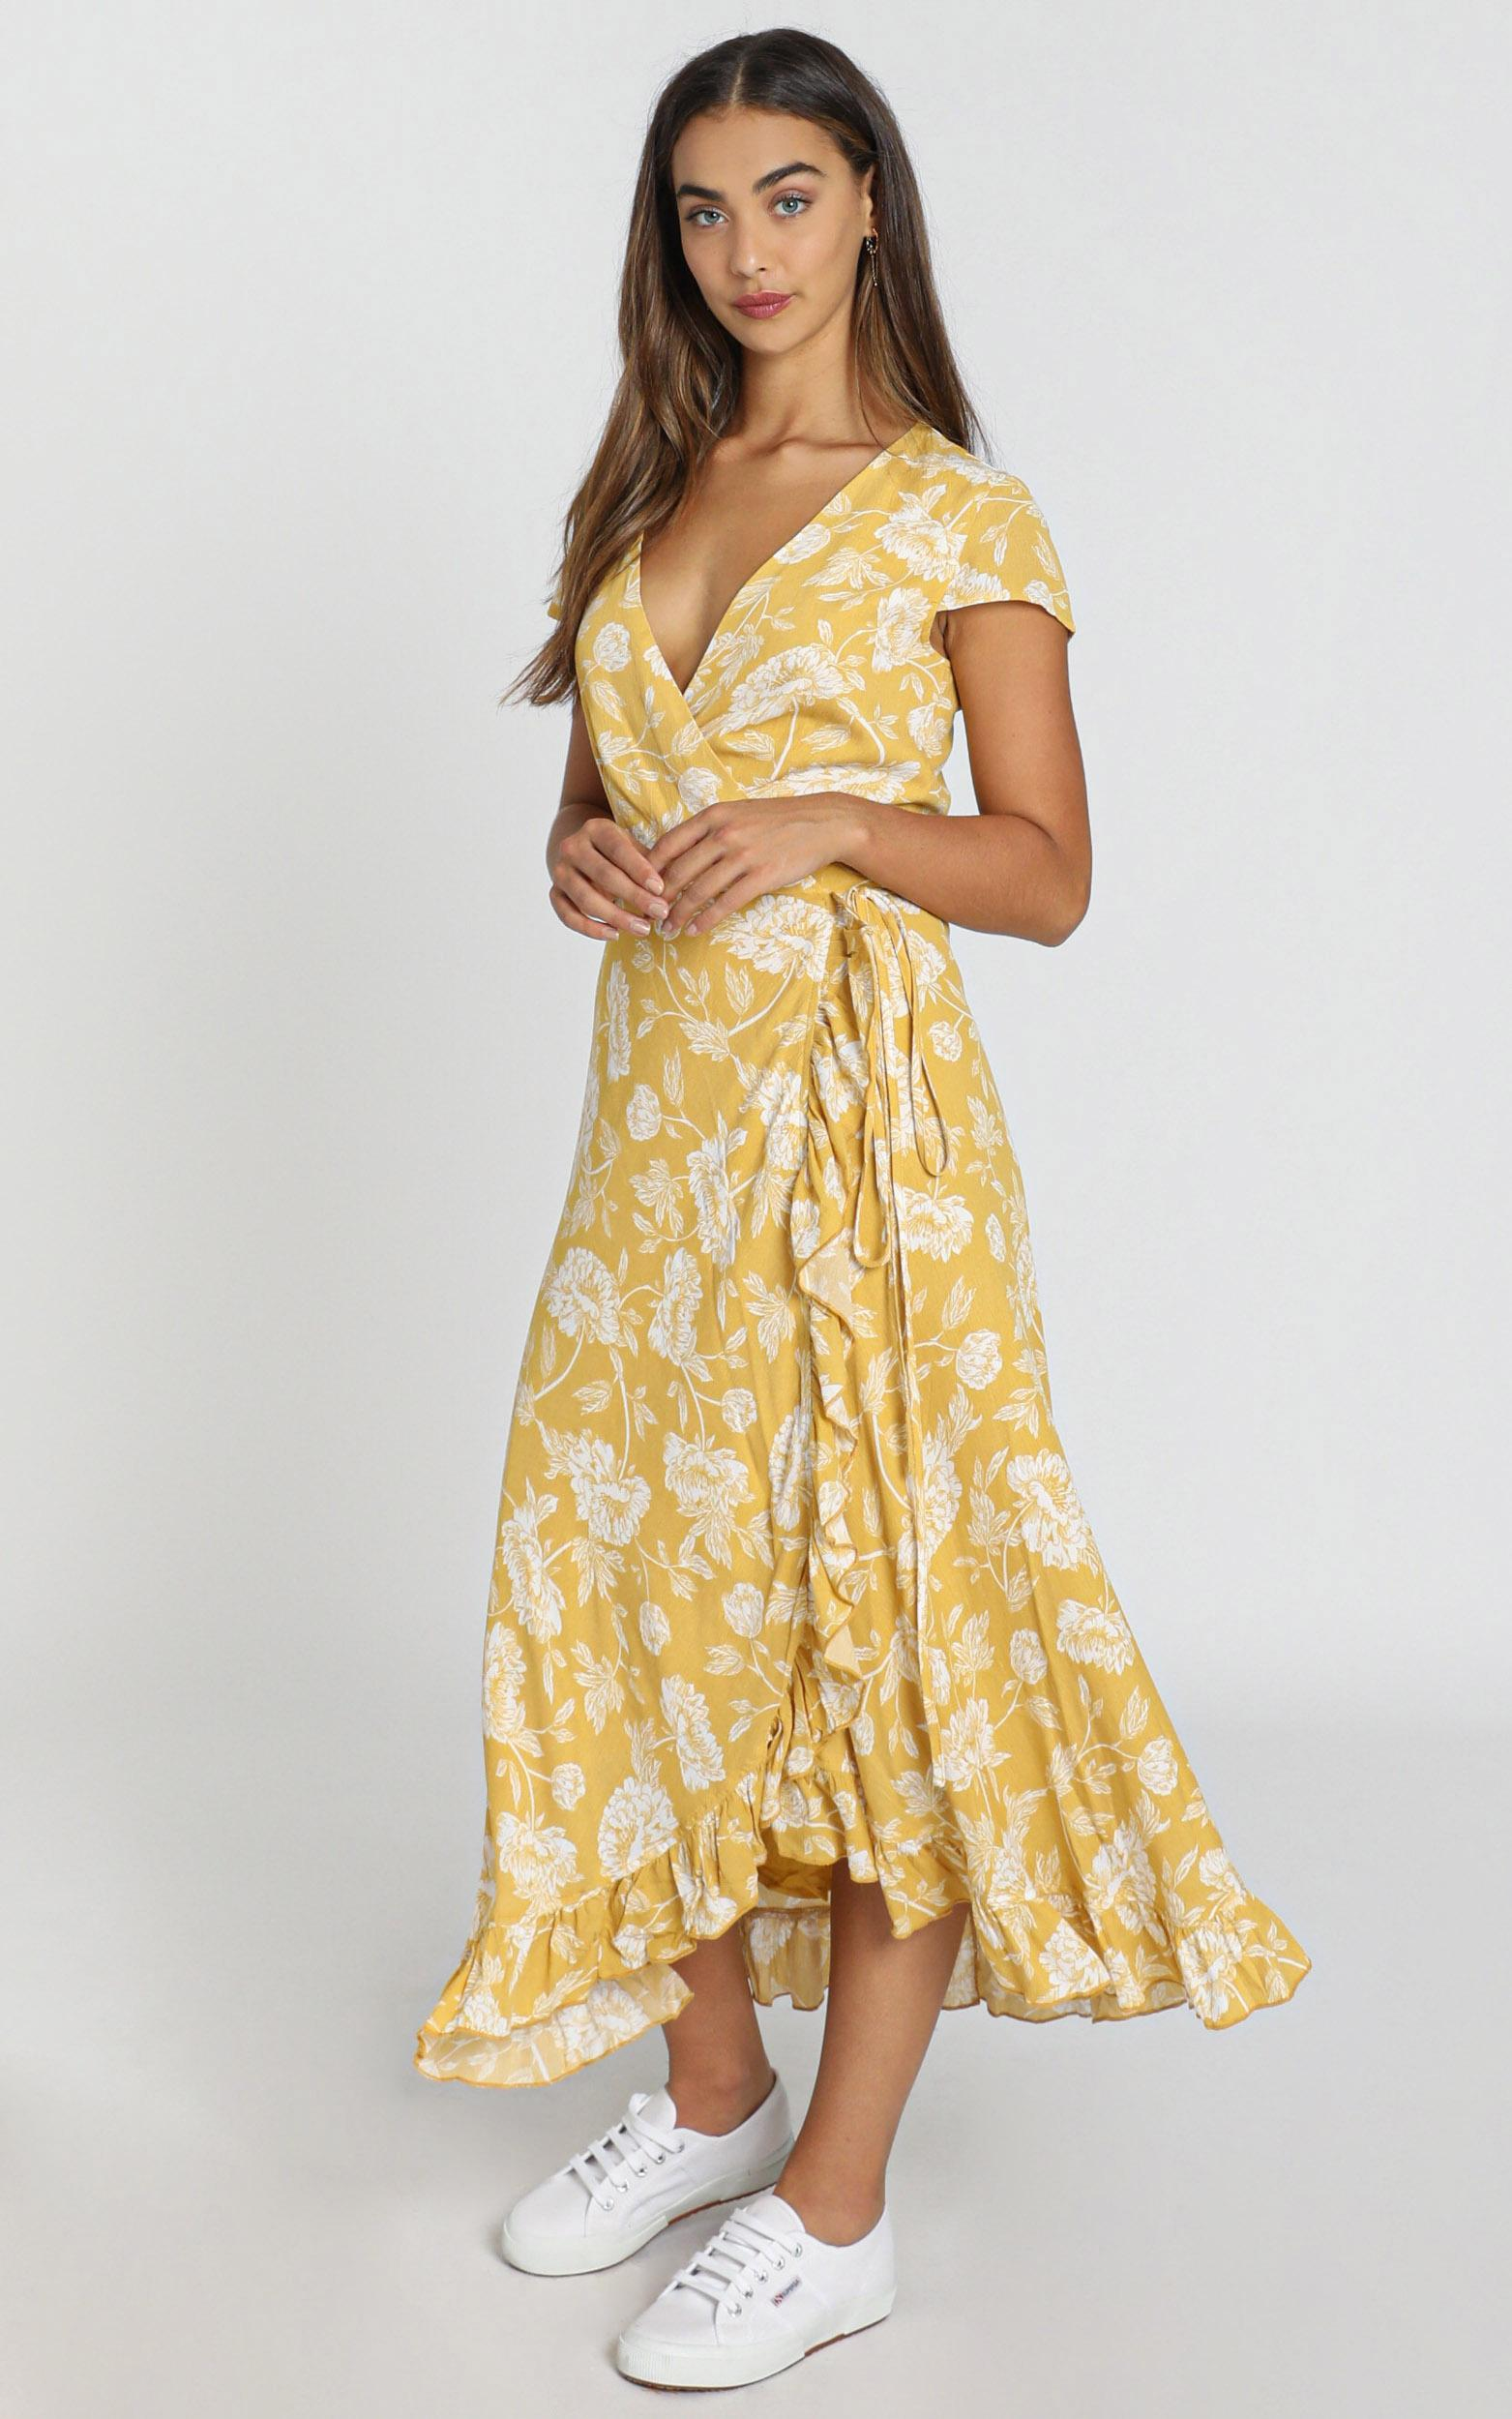 Tropical Scenes Dress in yellow floral - 20 (XXXXL), Yellow, hi-res image number null